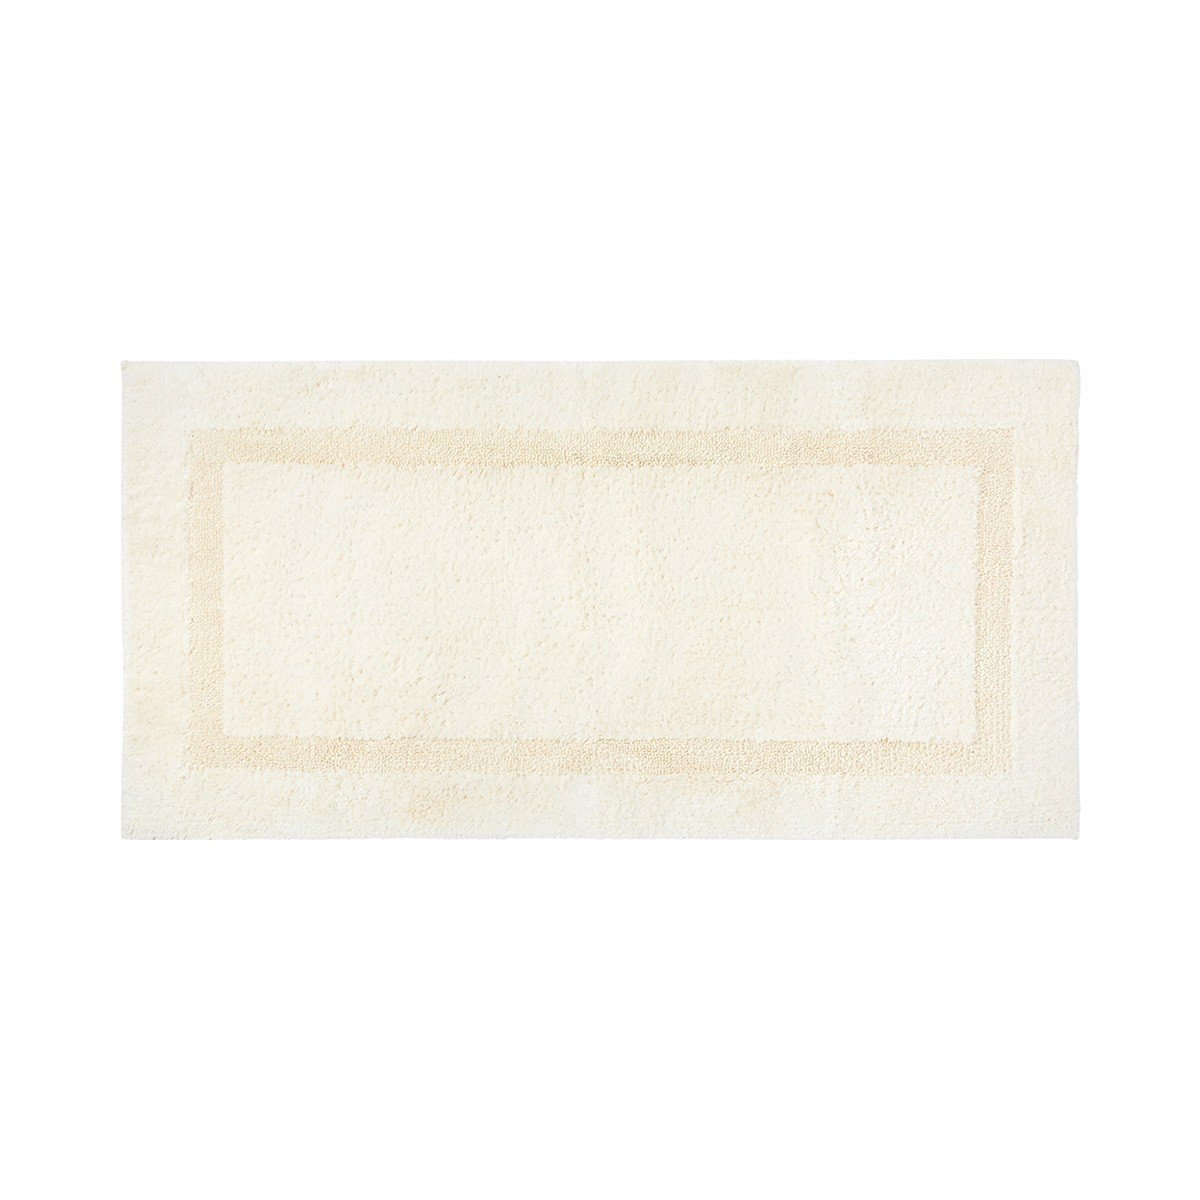 Aquilon Nacre Reversible Bath Rug by Yves Delorme | Fig Linens - Rectangle, ivory, bath mat, rug